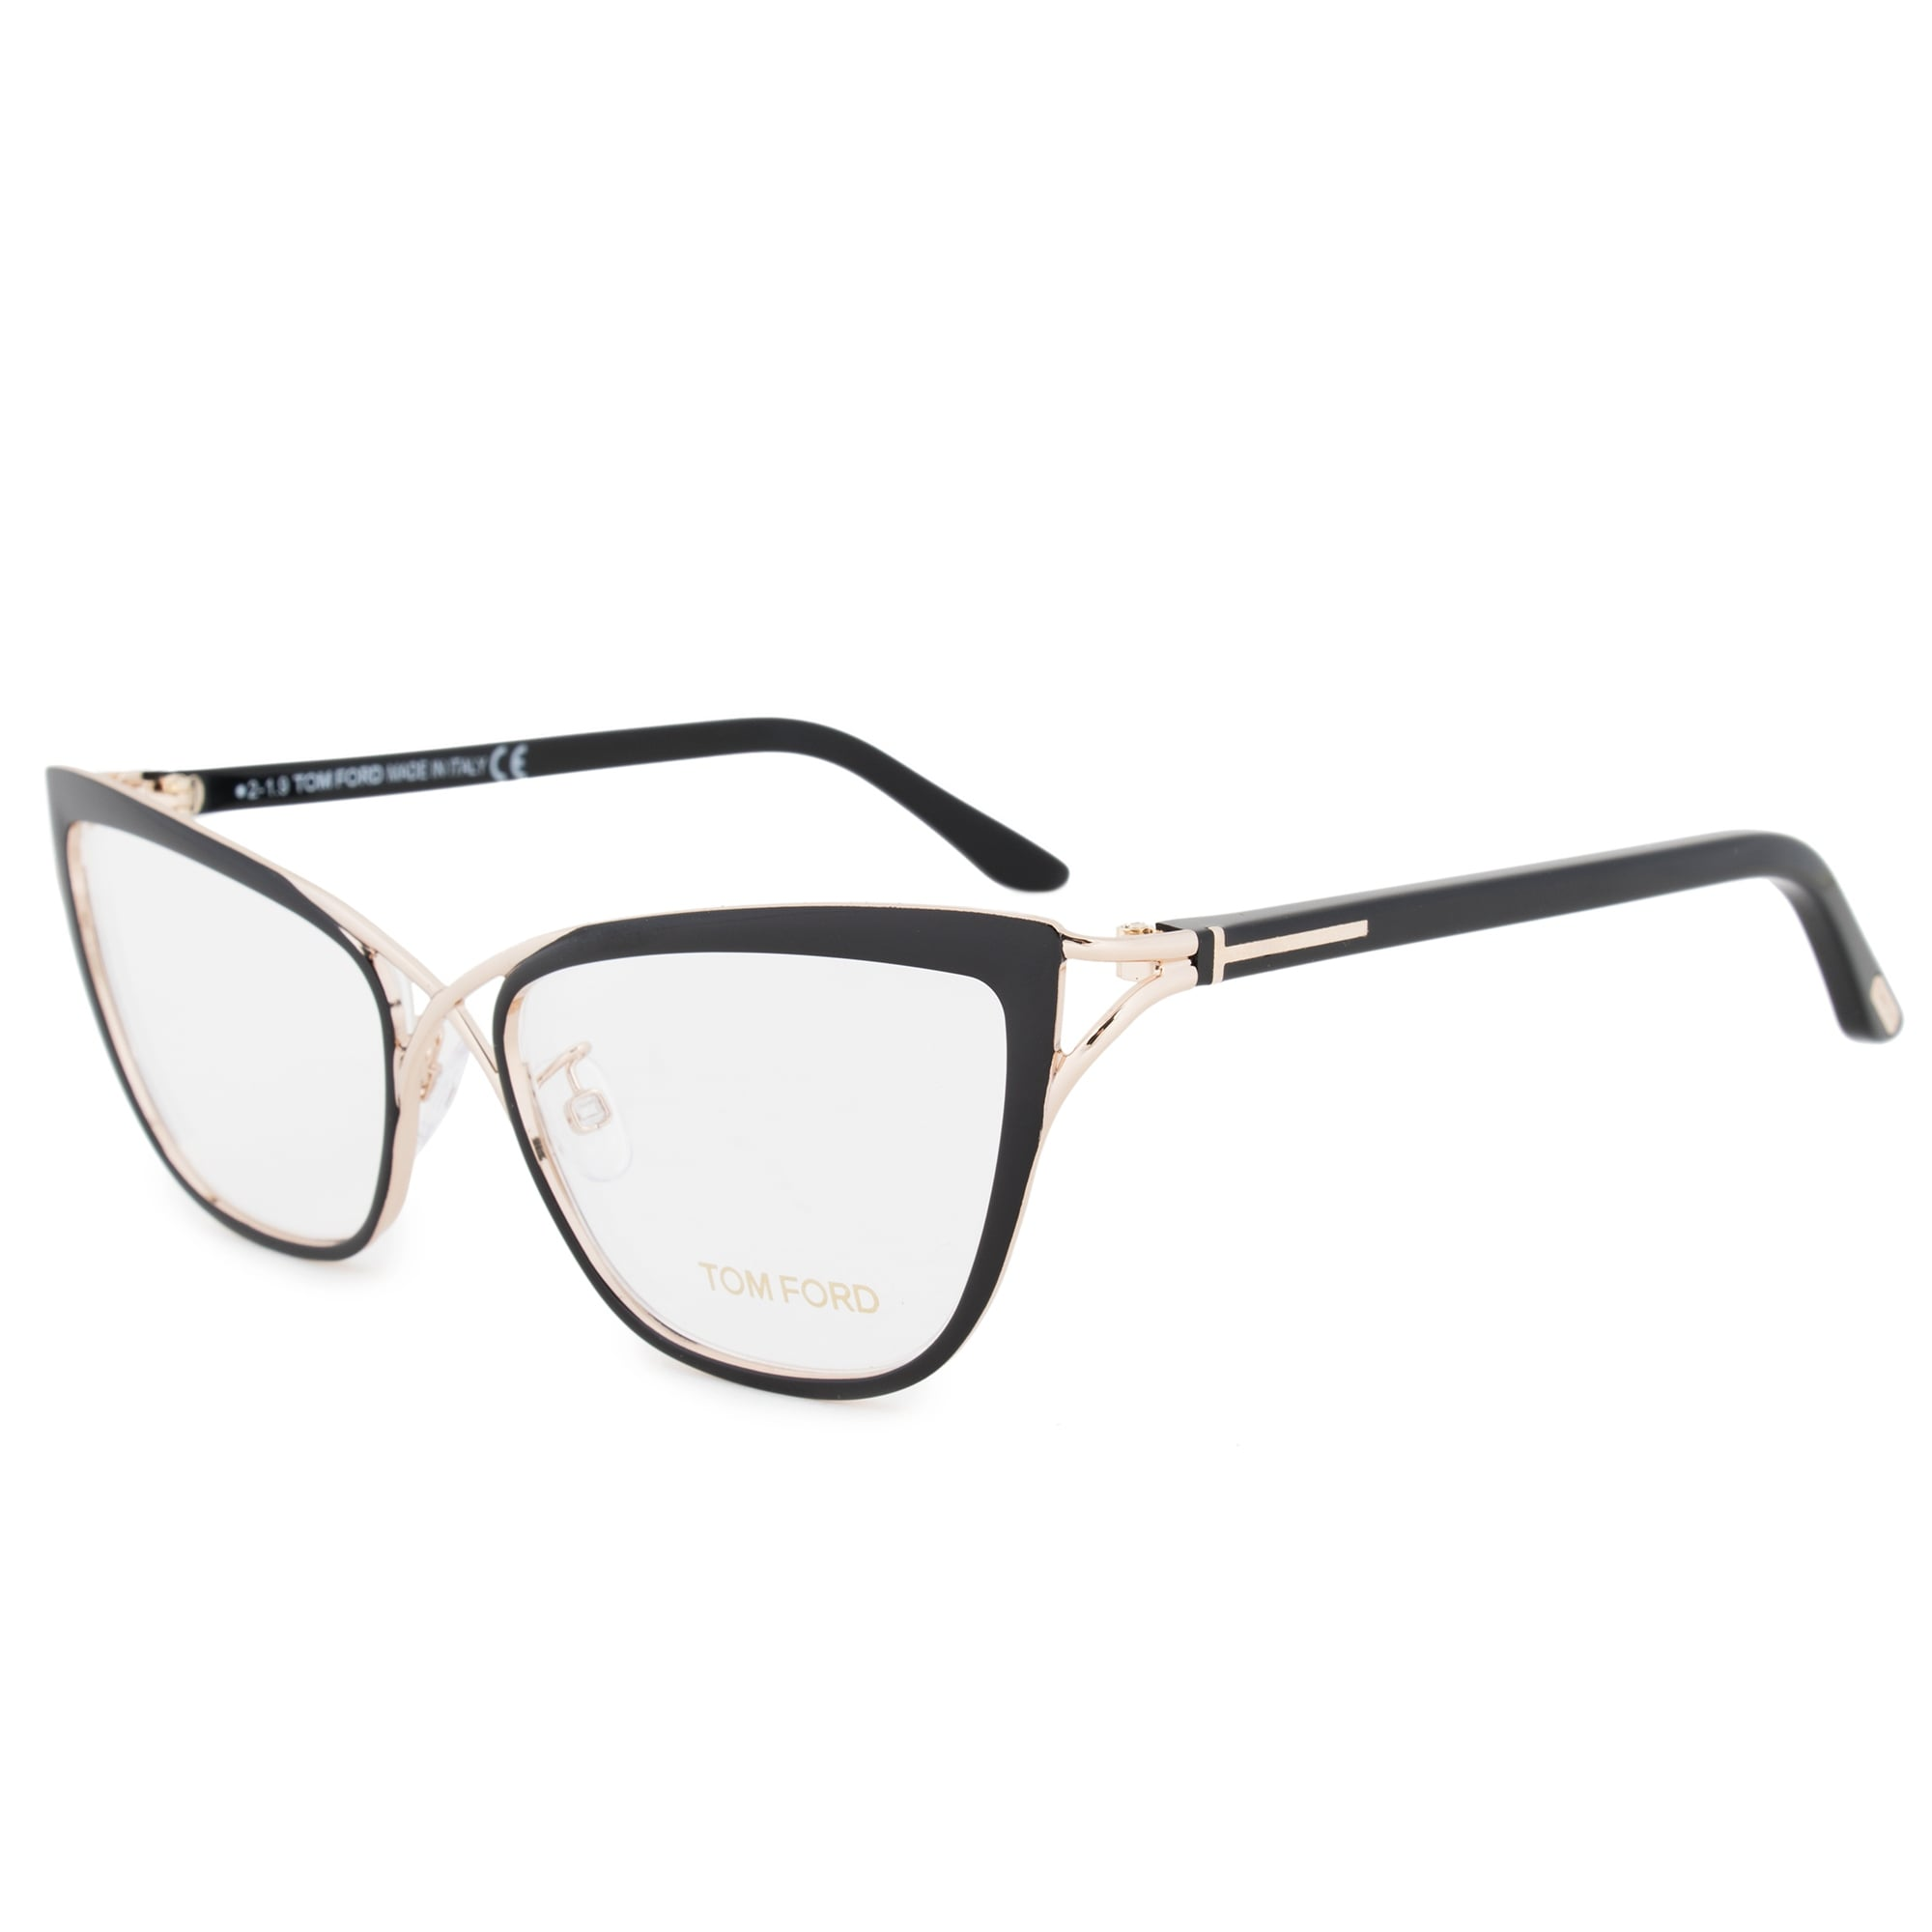 ccd36b25ab30 Shop Tom Ford FT5272 005 Cateye Eyeglasses Frame - Free Shipping ...